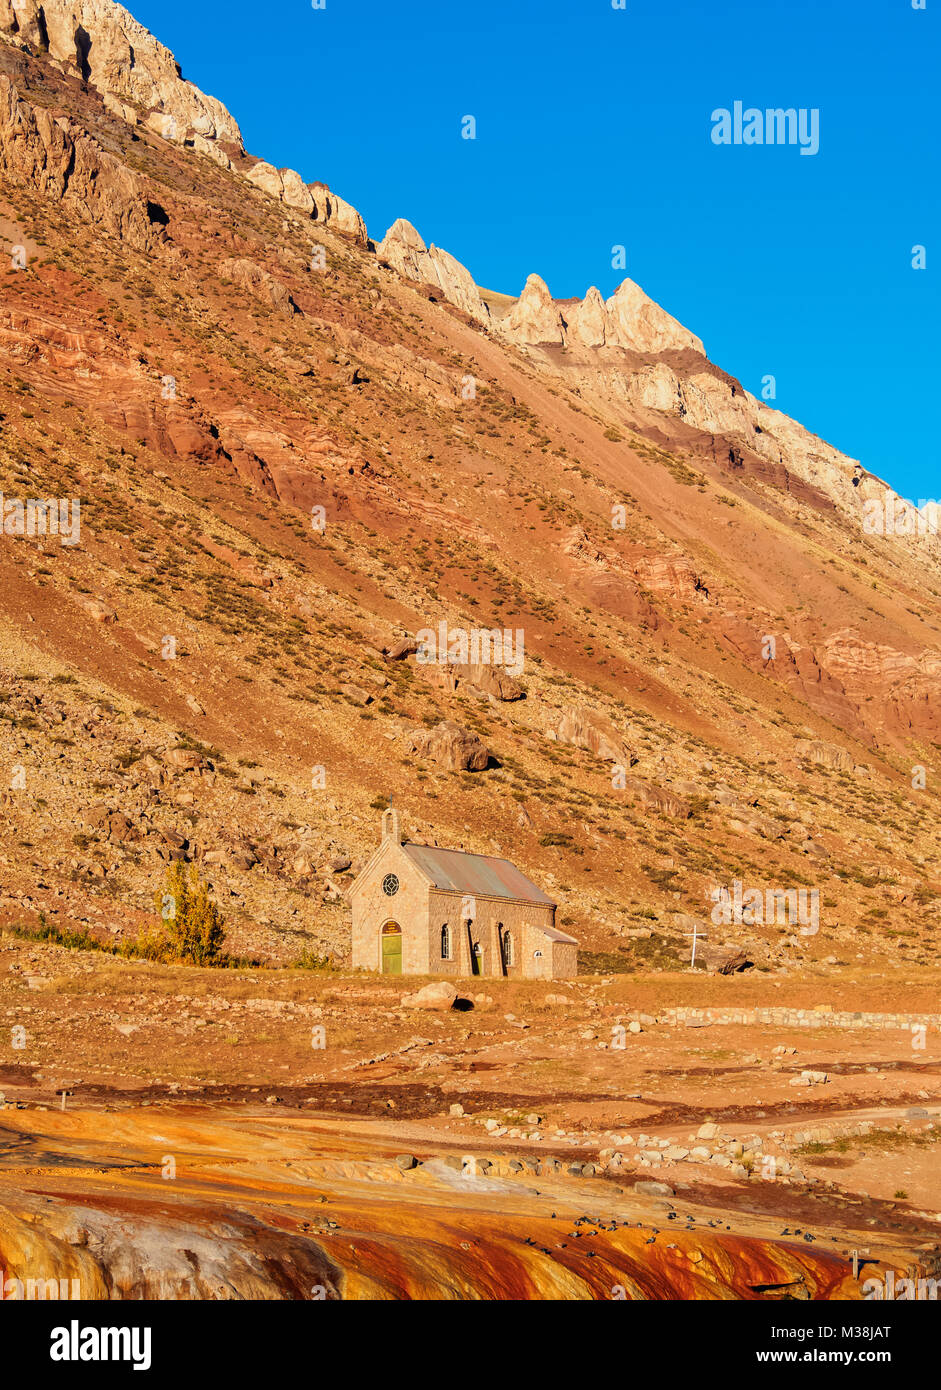 Central Andes Stock Photos & Central Andes Stock Images ...